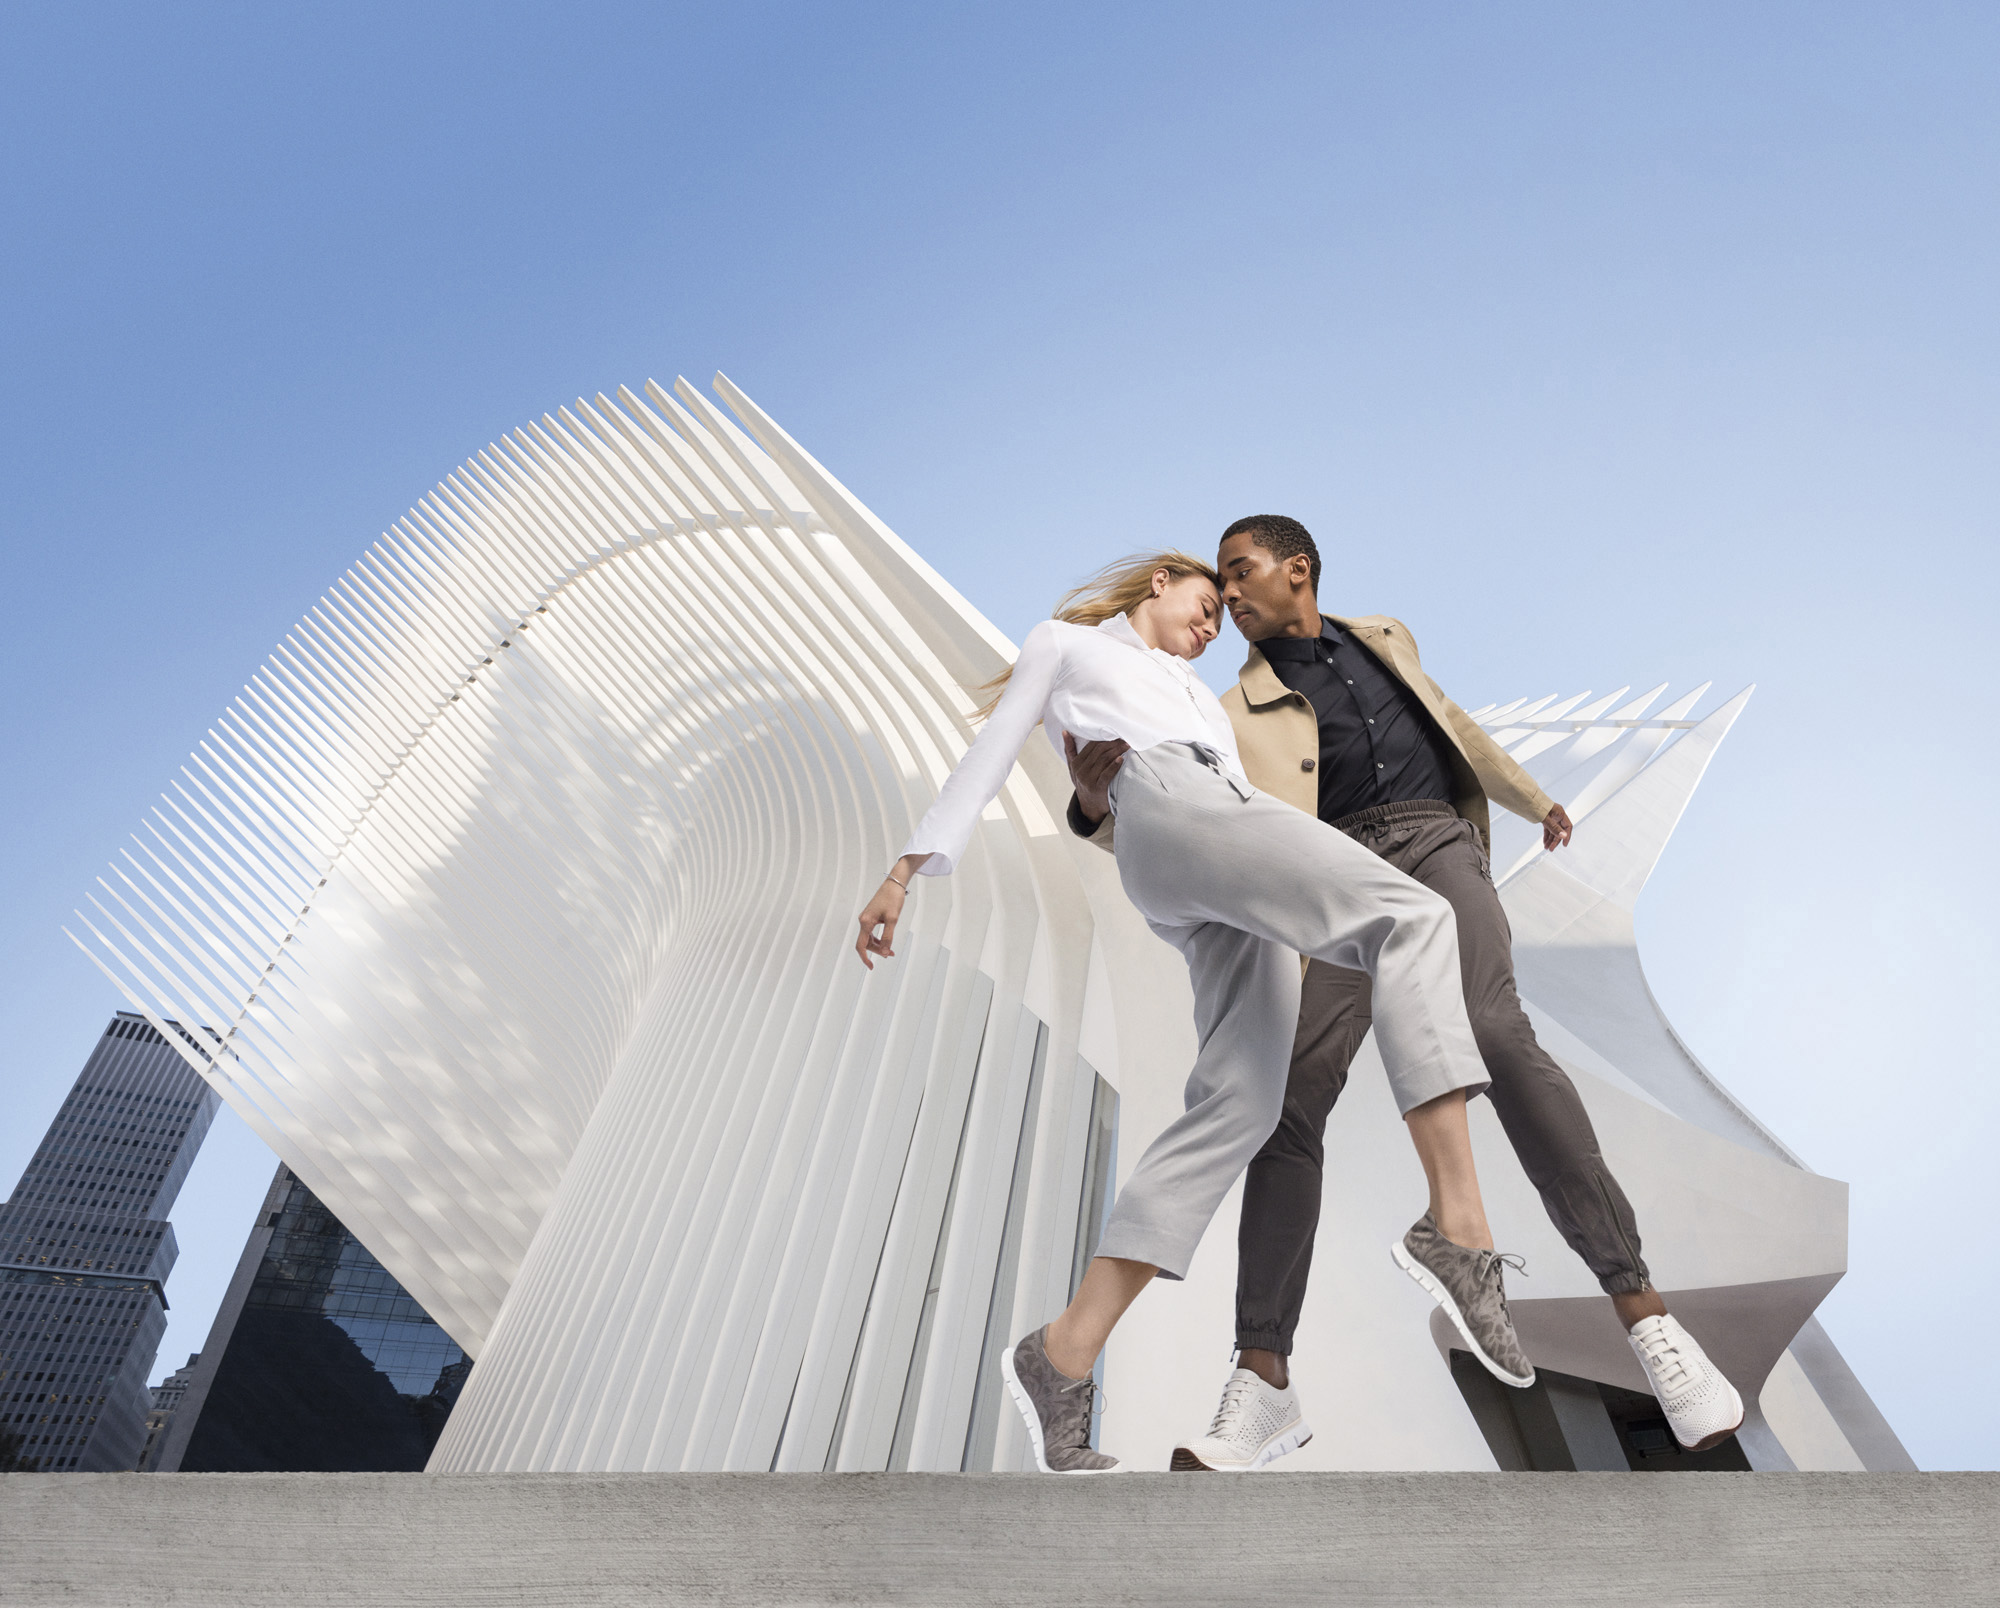 Cole Haan Spring 16 Campaign – The Art of Elegant Innovation (Sara Mearns, Craig Hall)